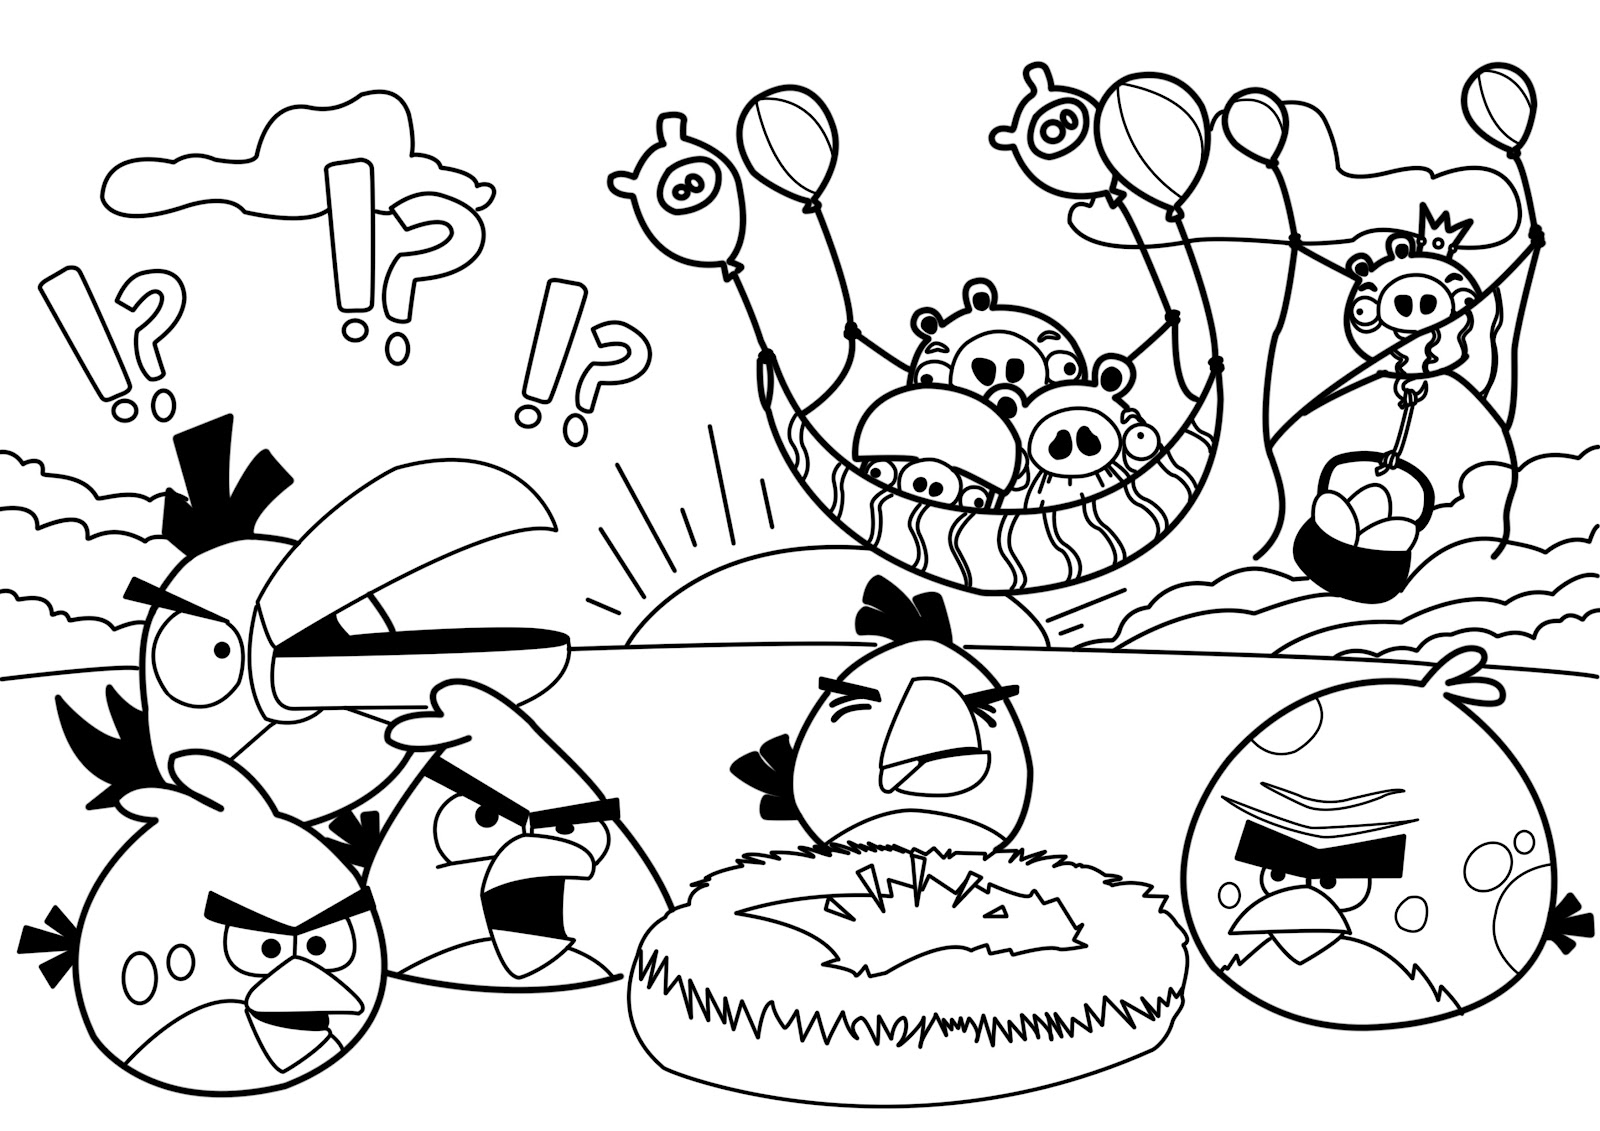 Coloring Book Angry Birds : Kids under angry birds coloring pages for